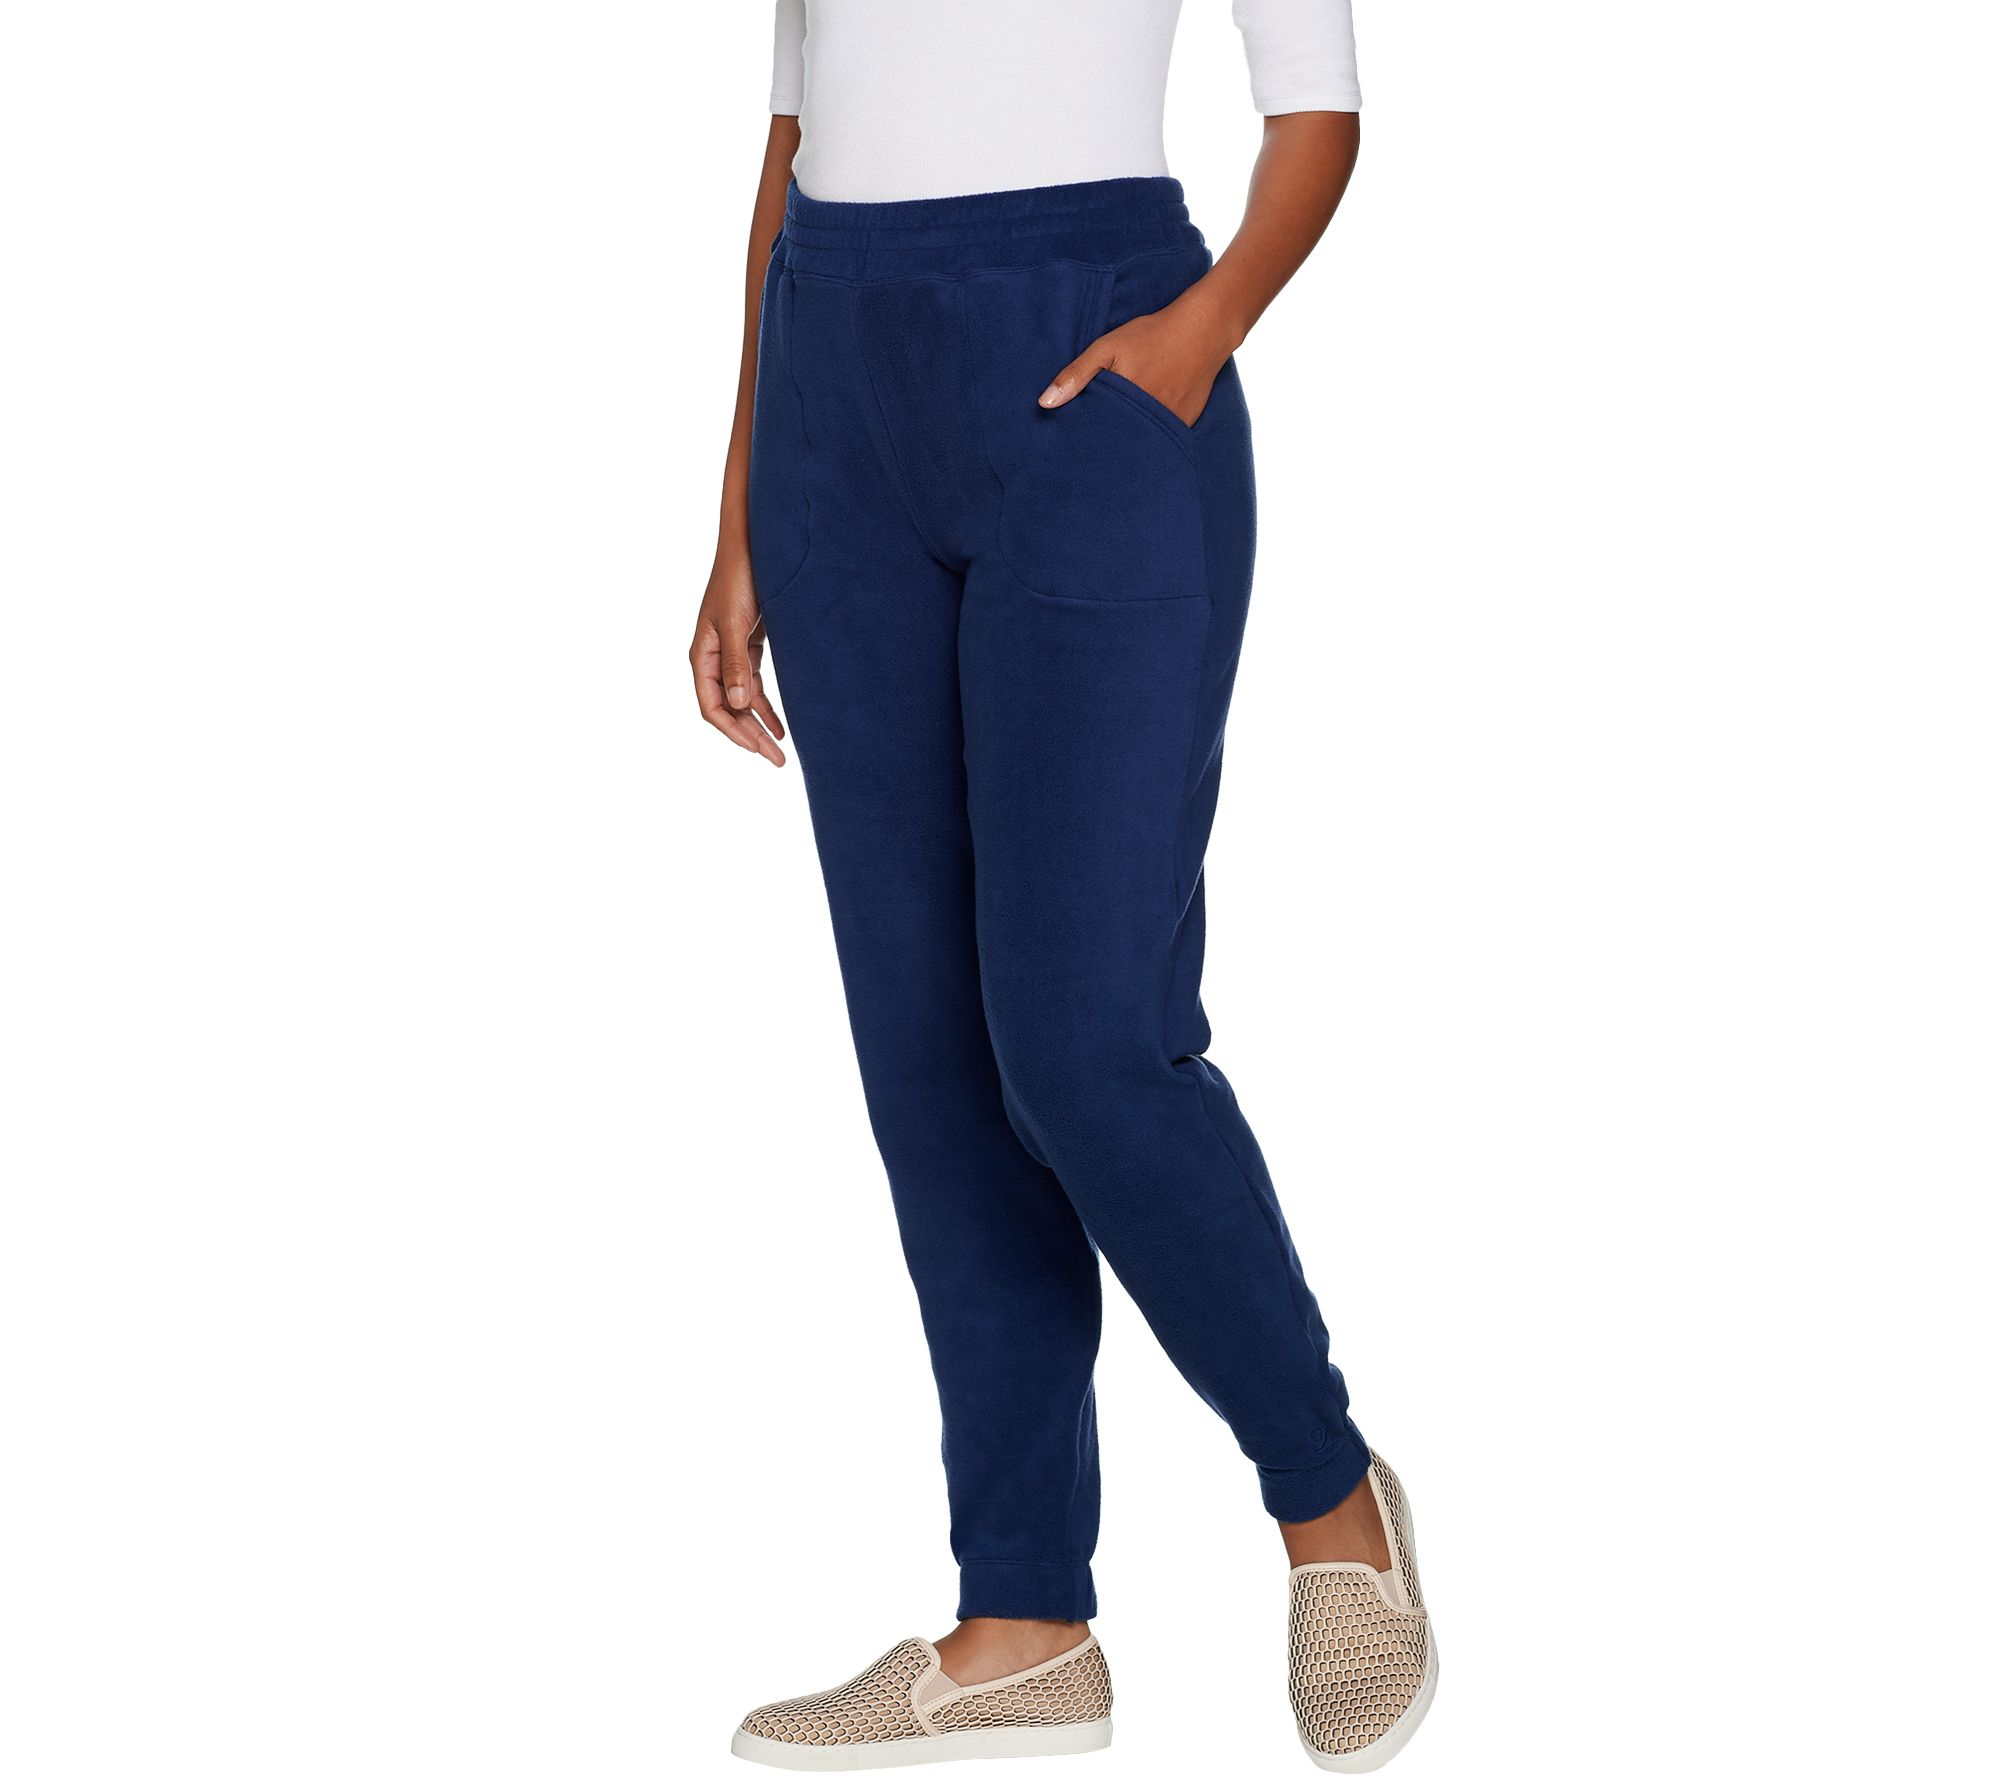 Confused Hookup A Throw 101 Jogger Sweatpants